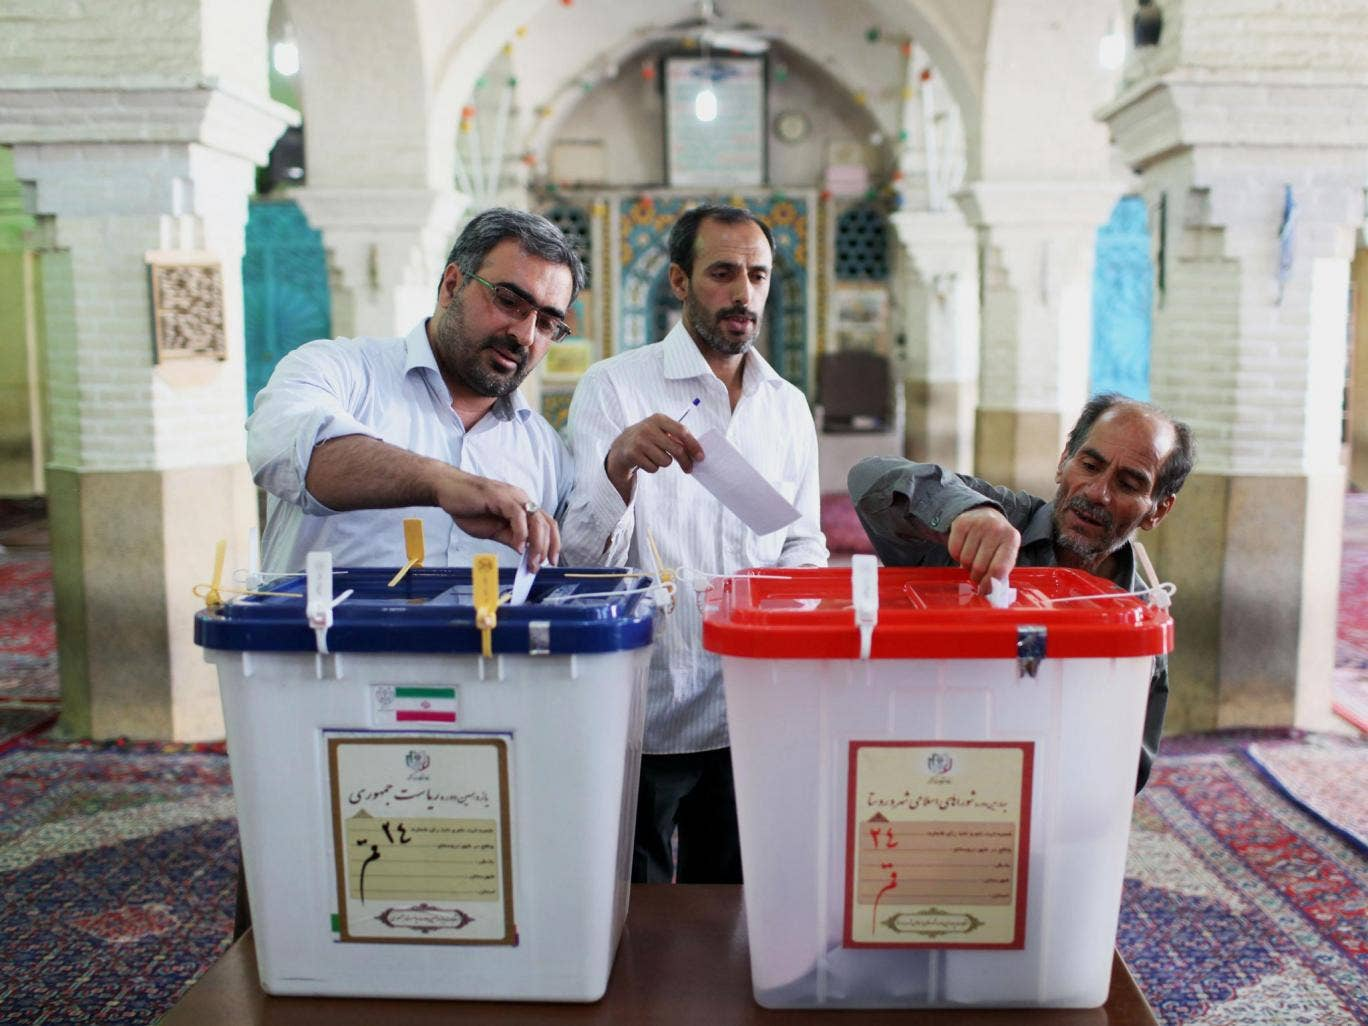 Iranian men cast their ballots during presidential elections at a polling station in Qom, 125 kilometers (78 miles) south of the capital Tehran, Iran